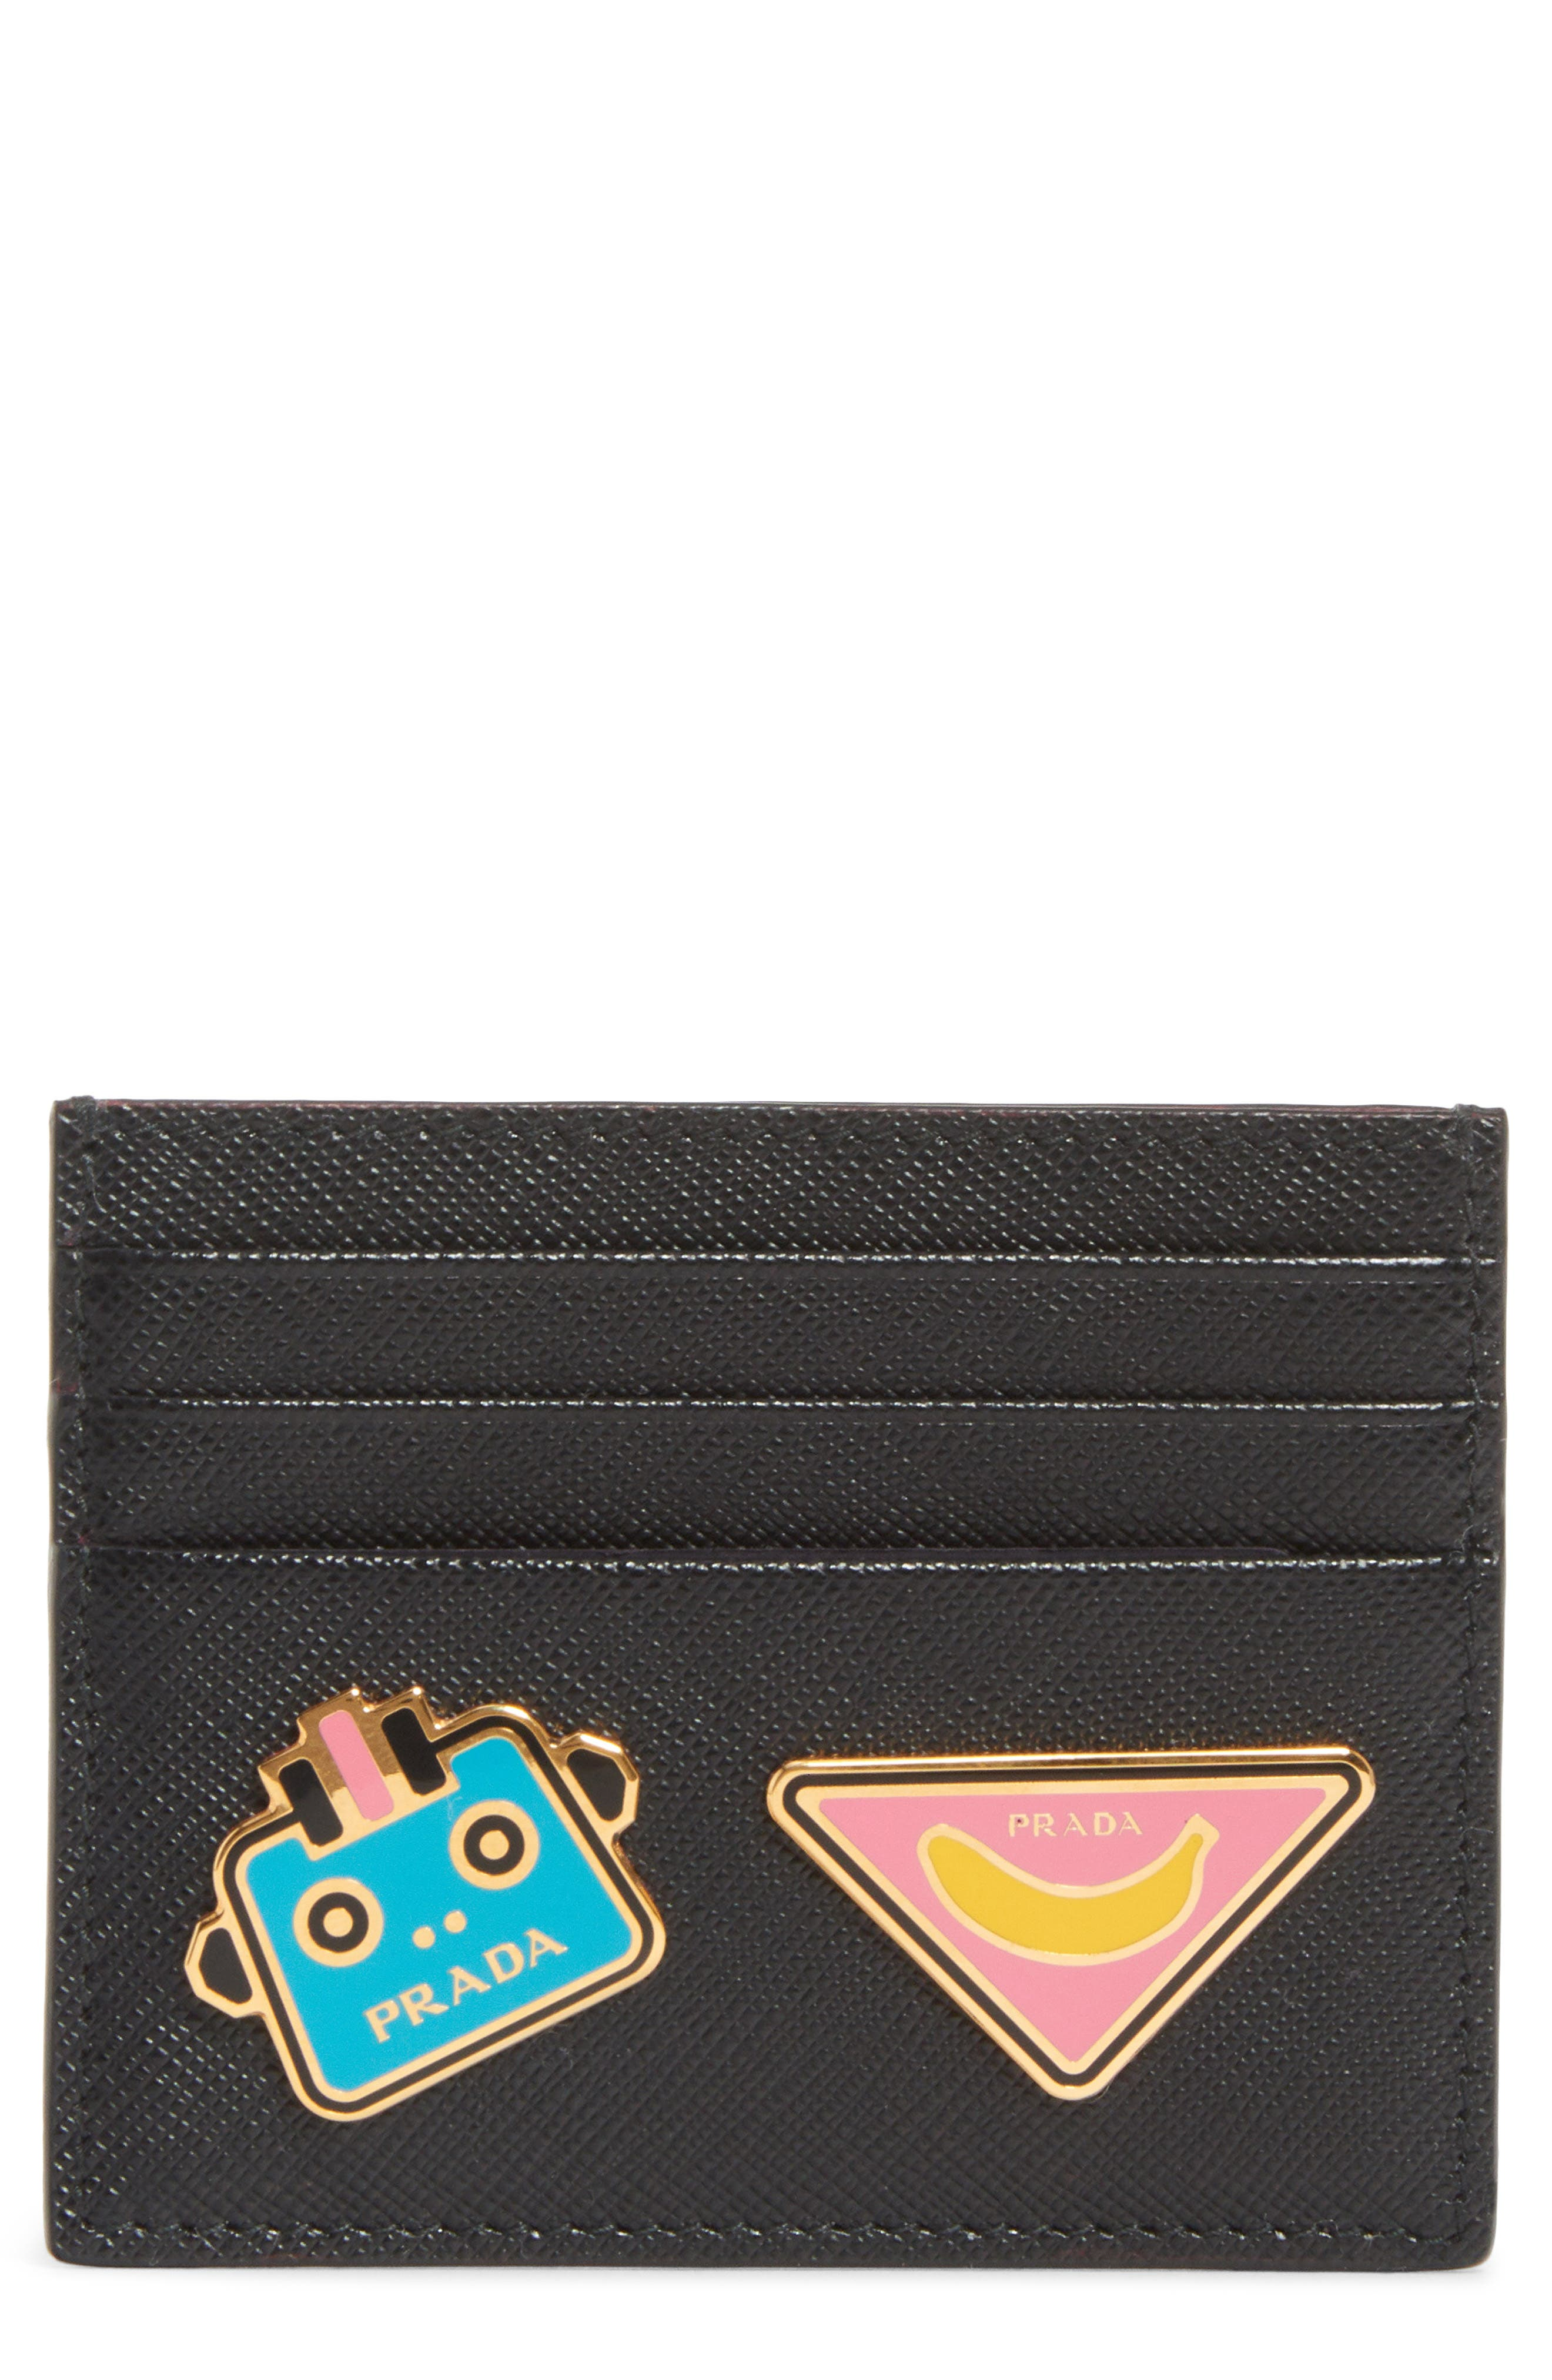 Embellished Saffiano Leather Card Case,                         Main,                         color, 001